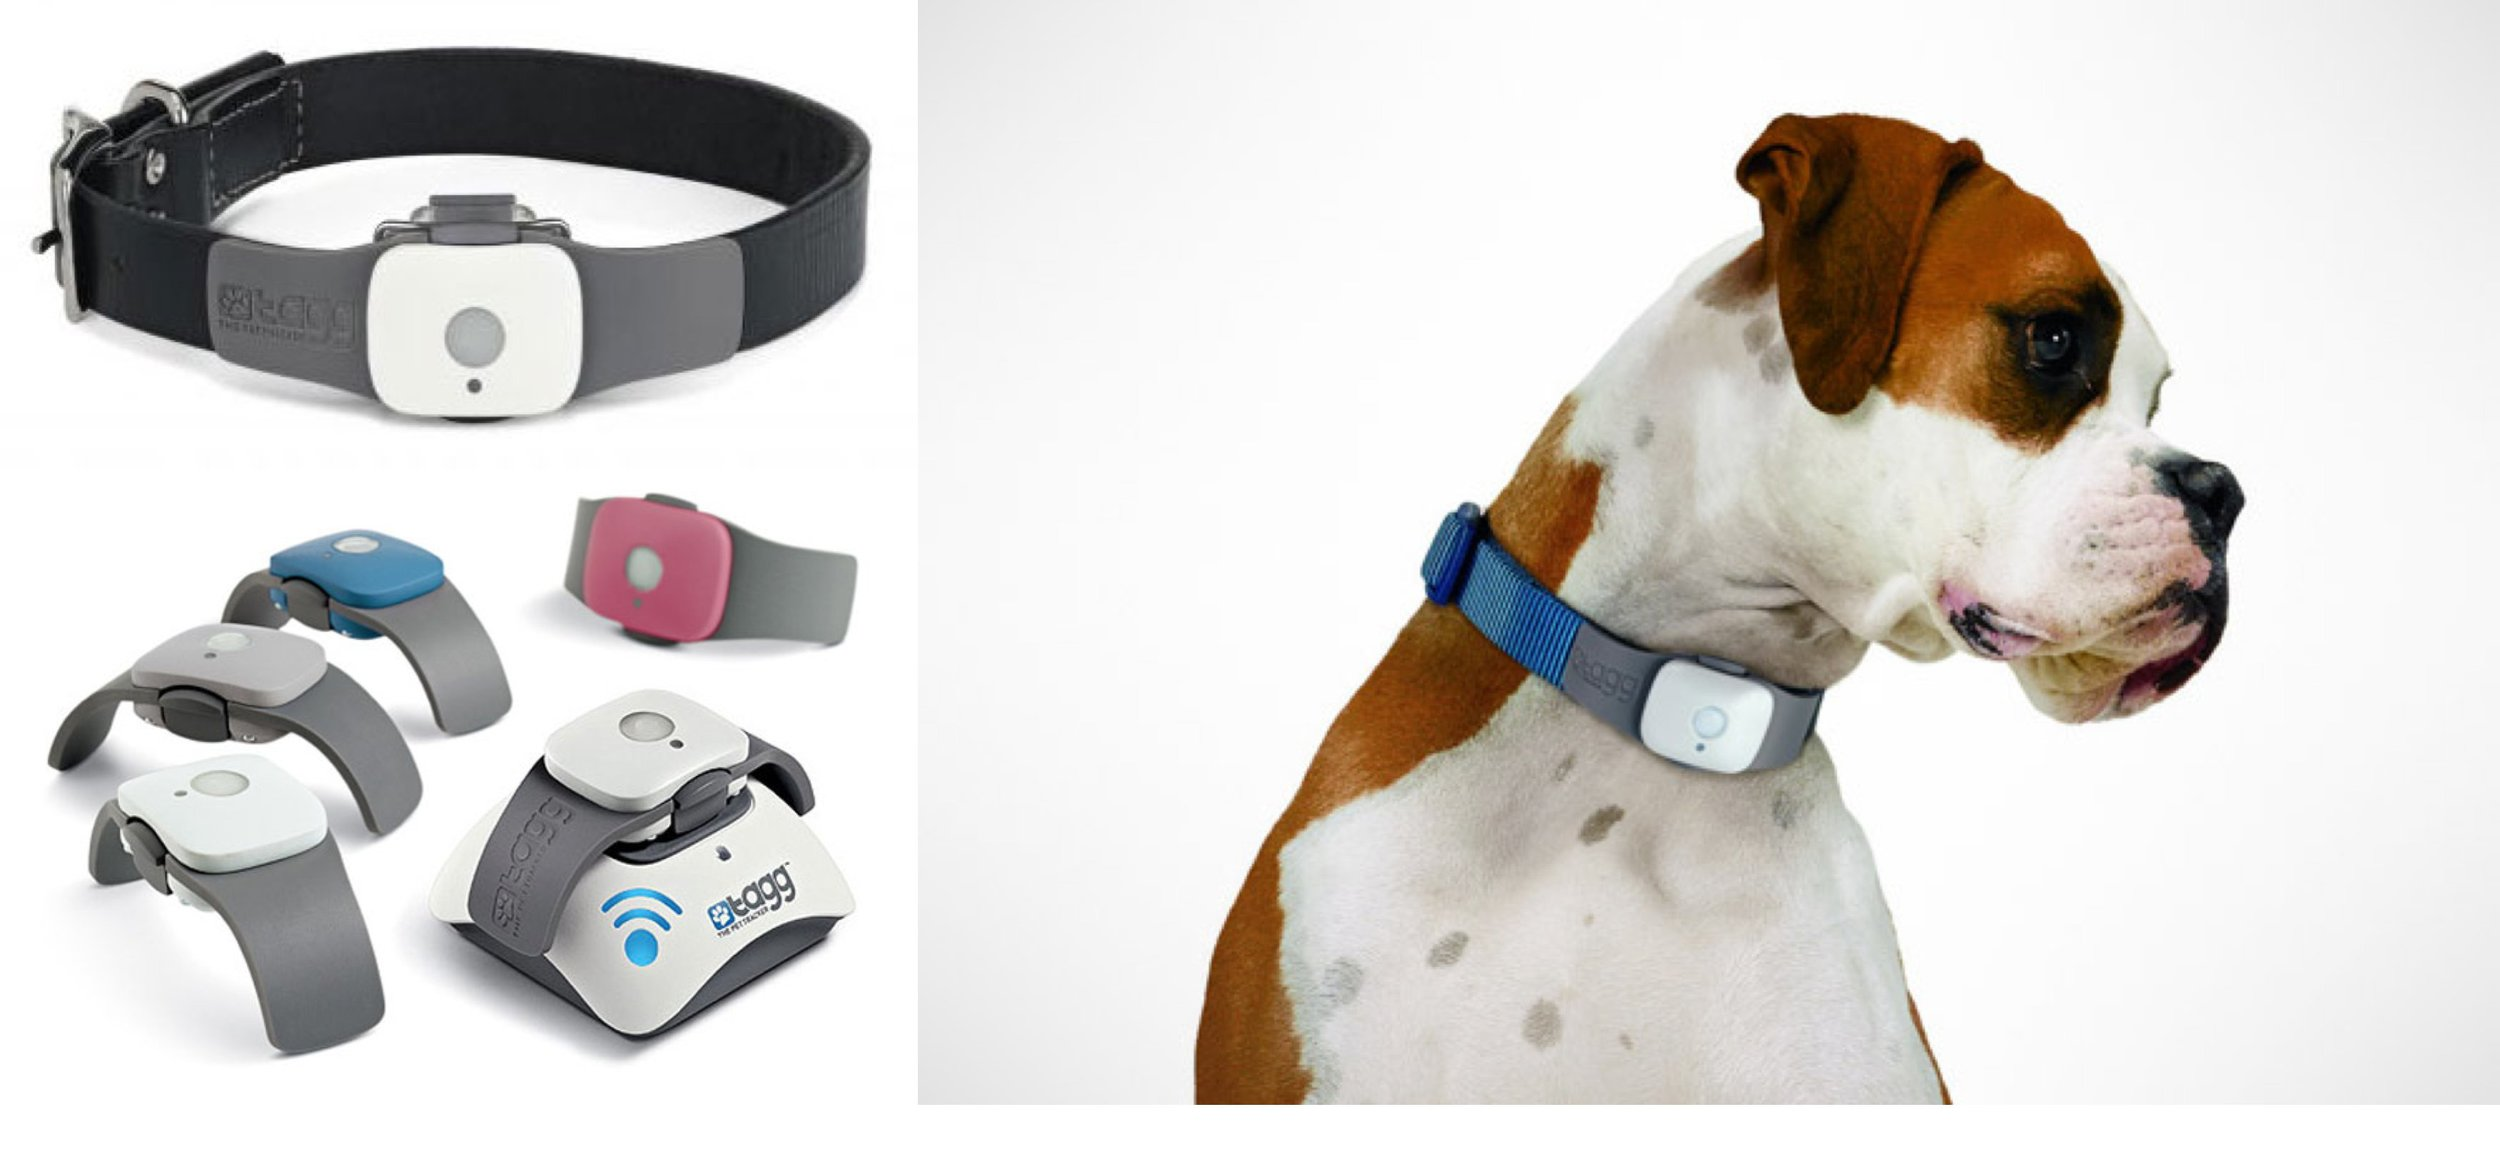 tagg-pet-tracker-gps-for-dogs-holiday-gift